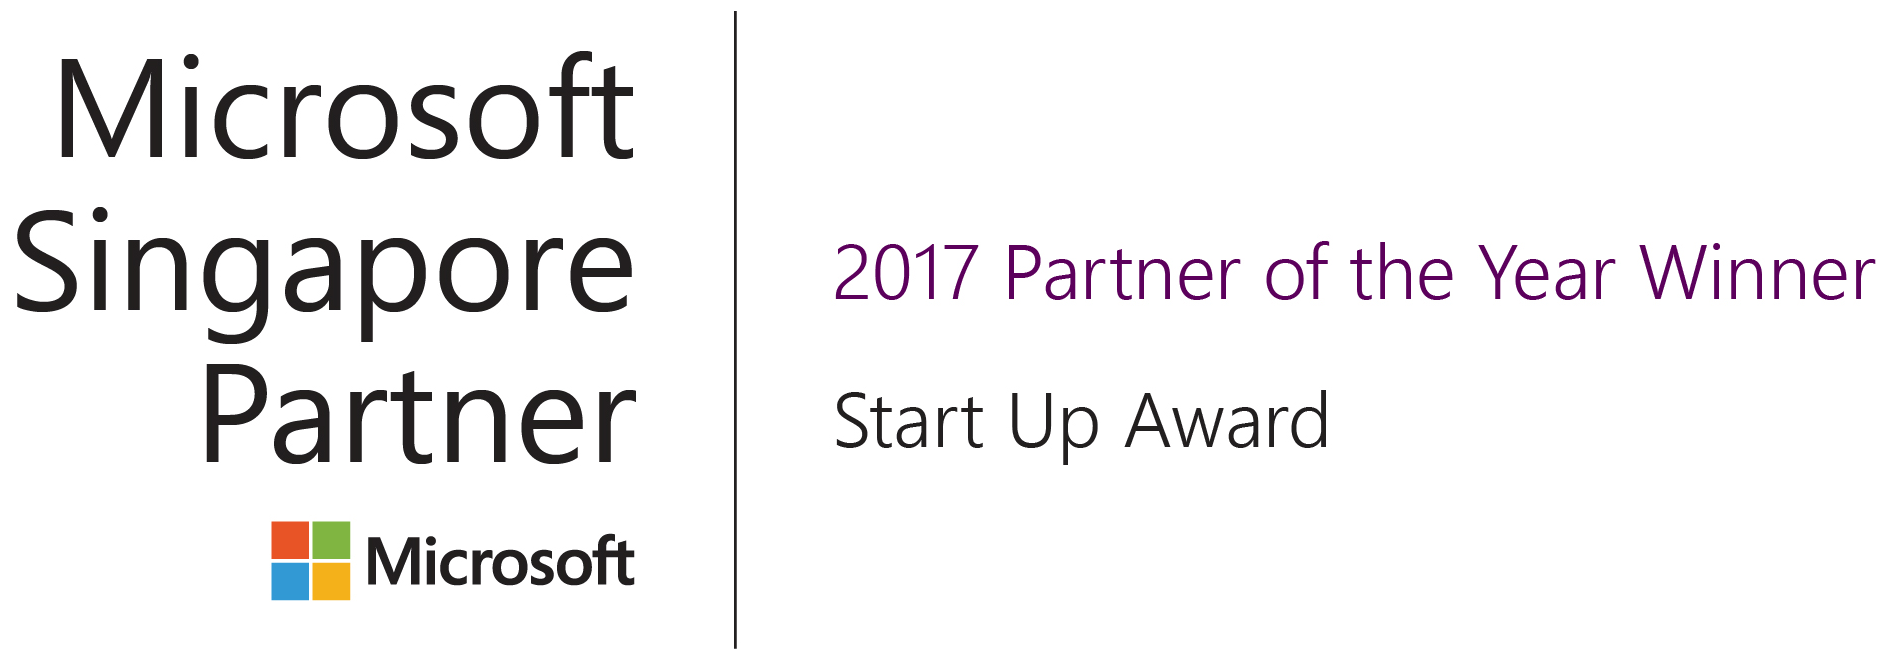 microsoft-partner-awards